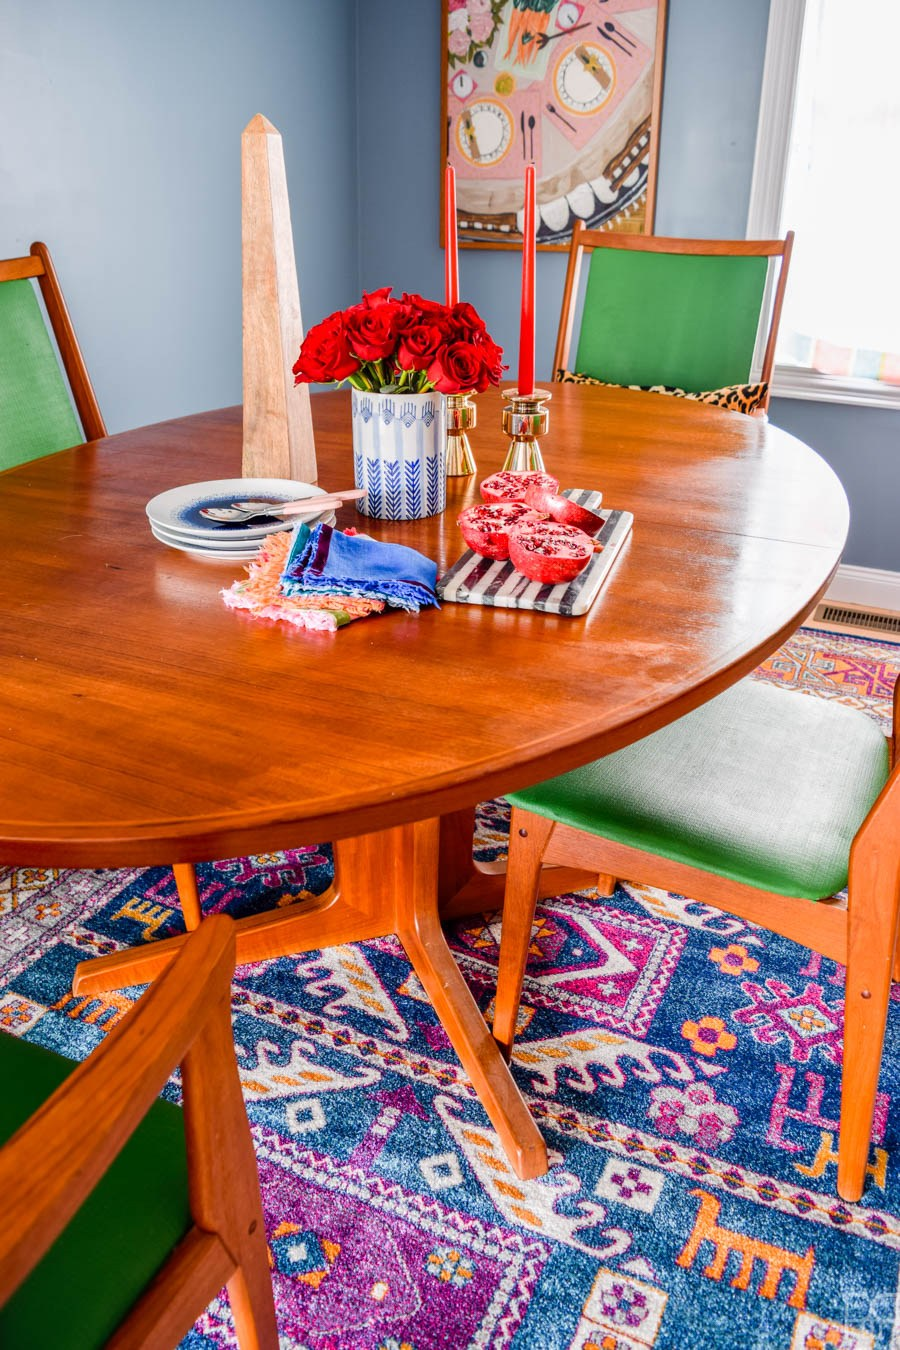 Eclectic Home Tour of PMQ for Two - get tons of renter friendly decorating and DIY ideas - love this colorful mid century dining room